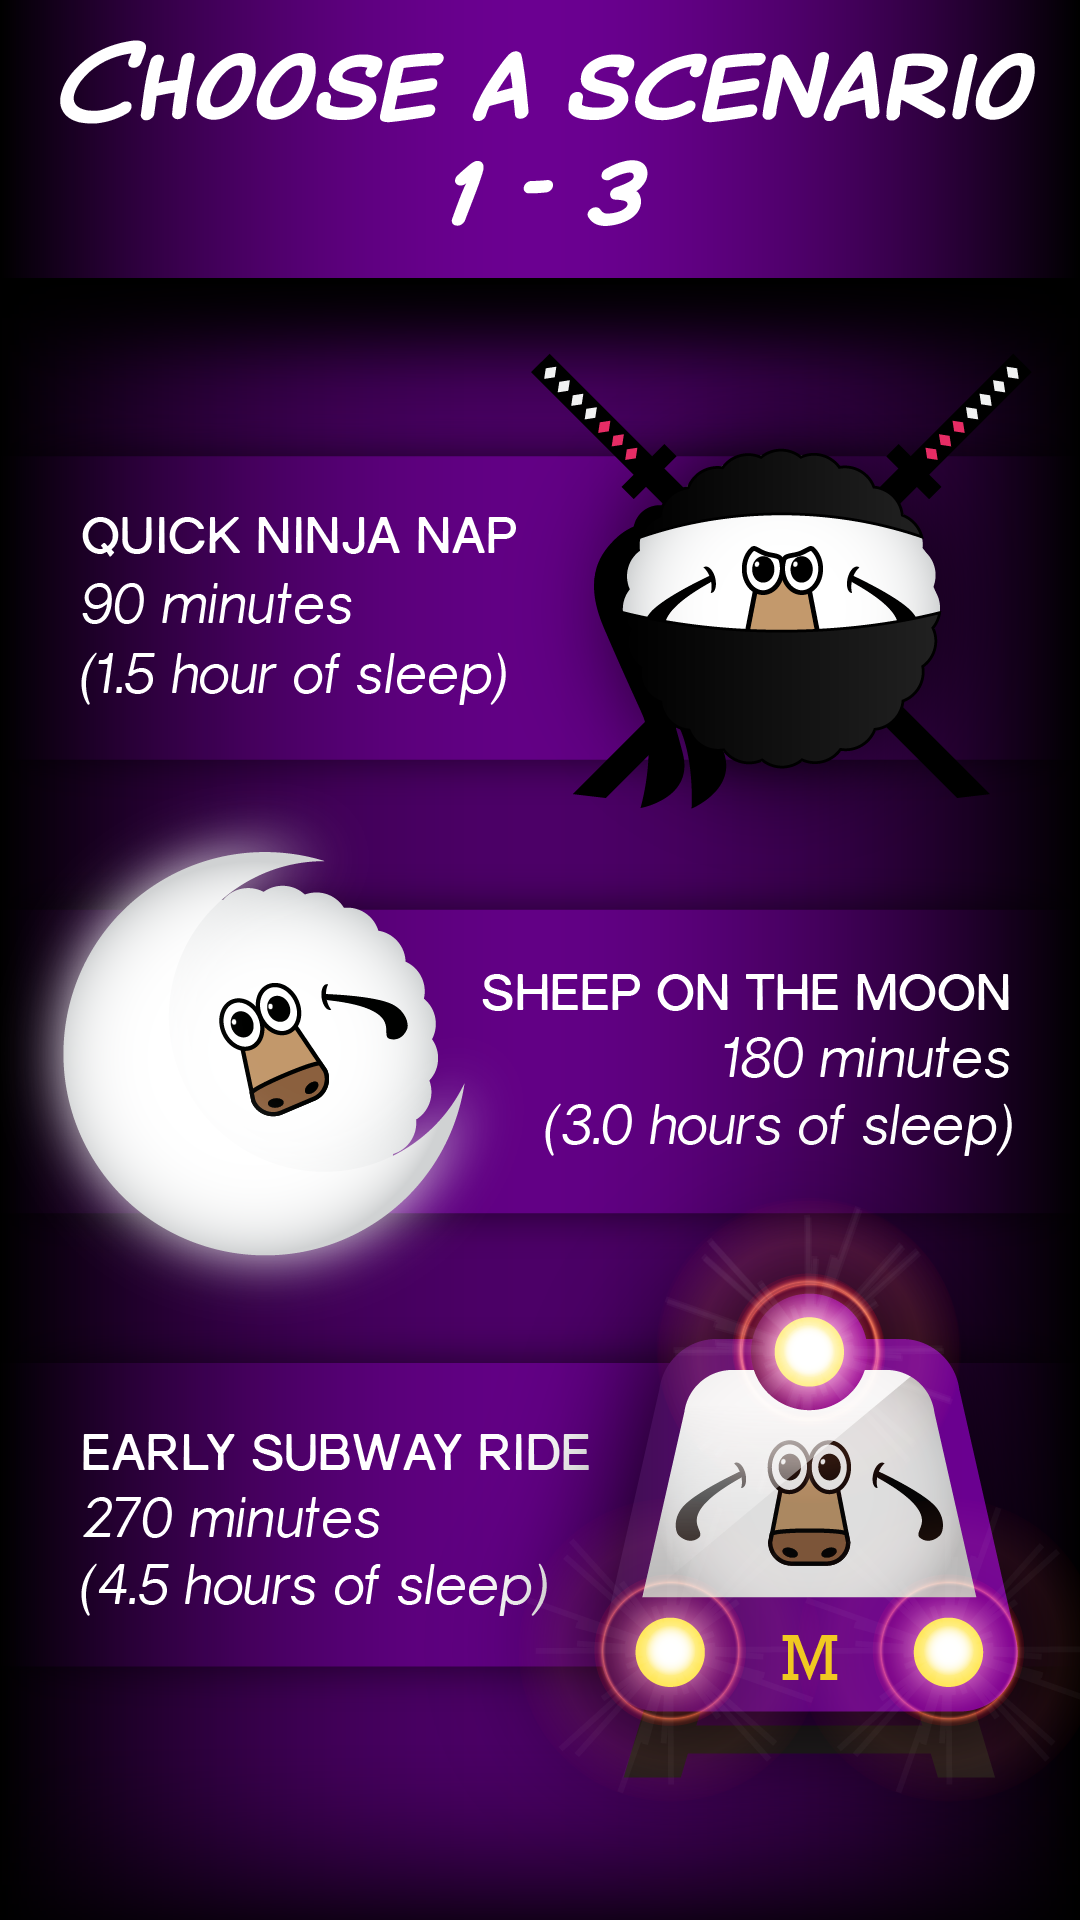 Sleep With Sheep in 90 Minute Cycles - Best Sleep Cycle Alarm Clock for iPhone (www.sleepwithsheep.com)